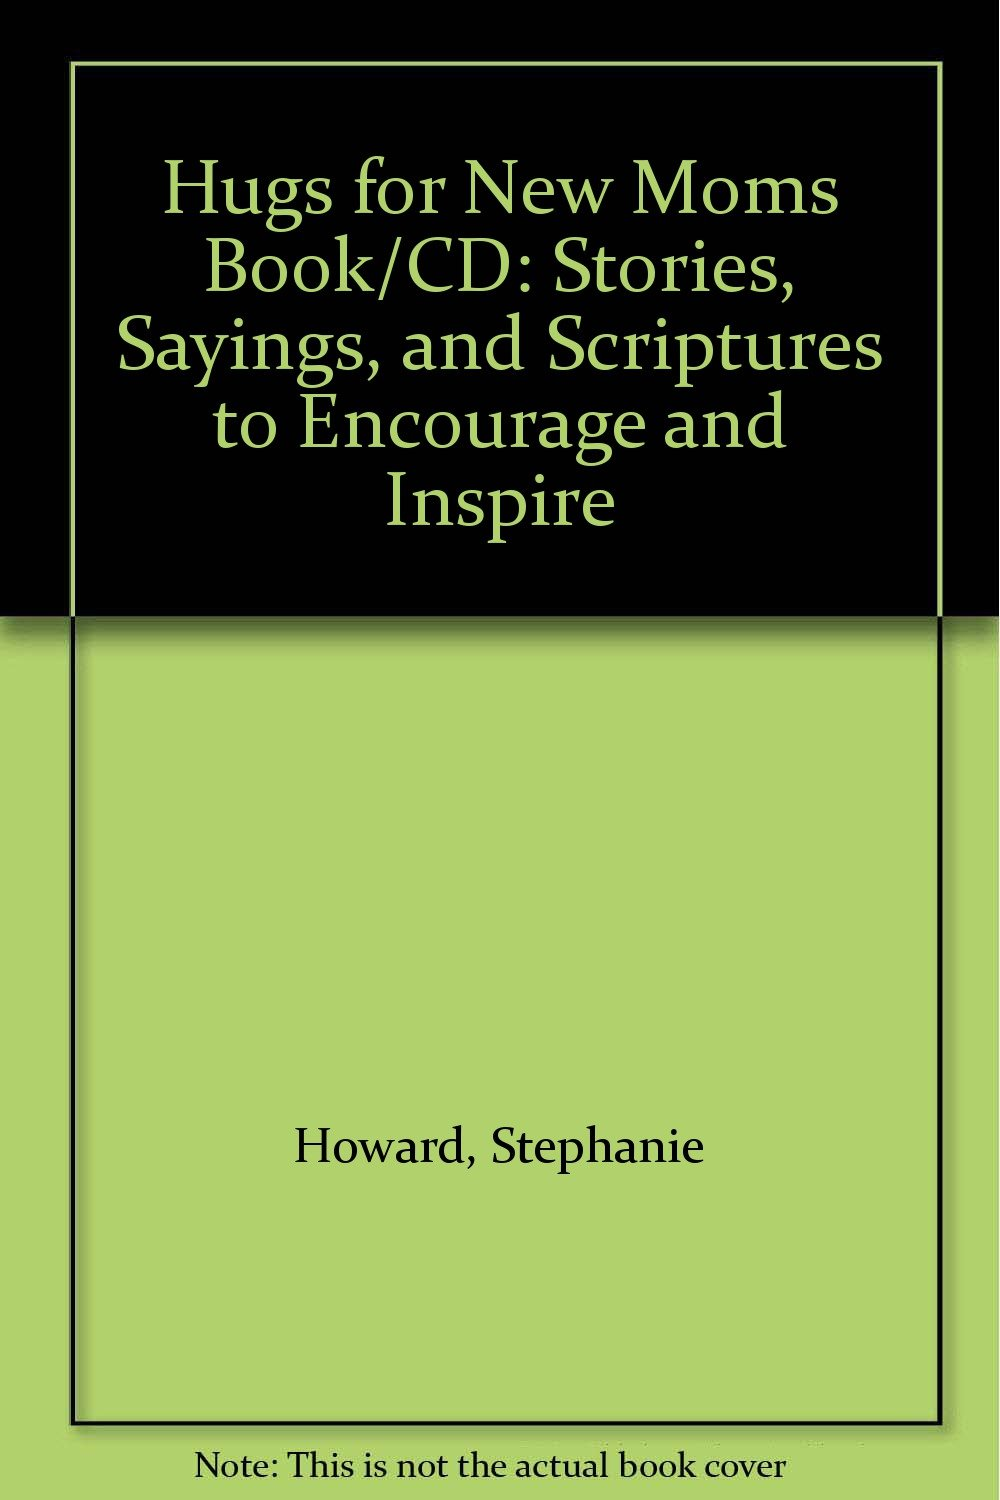 Download Hugs for New Moms Book/CD: Stories, Sayings, and Scriptures to Encourage and Inspire ebook